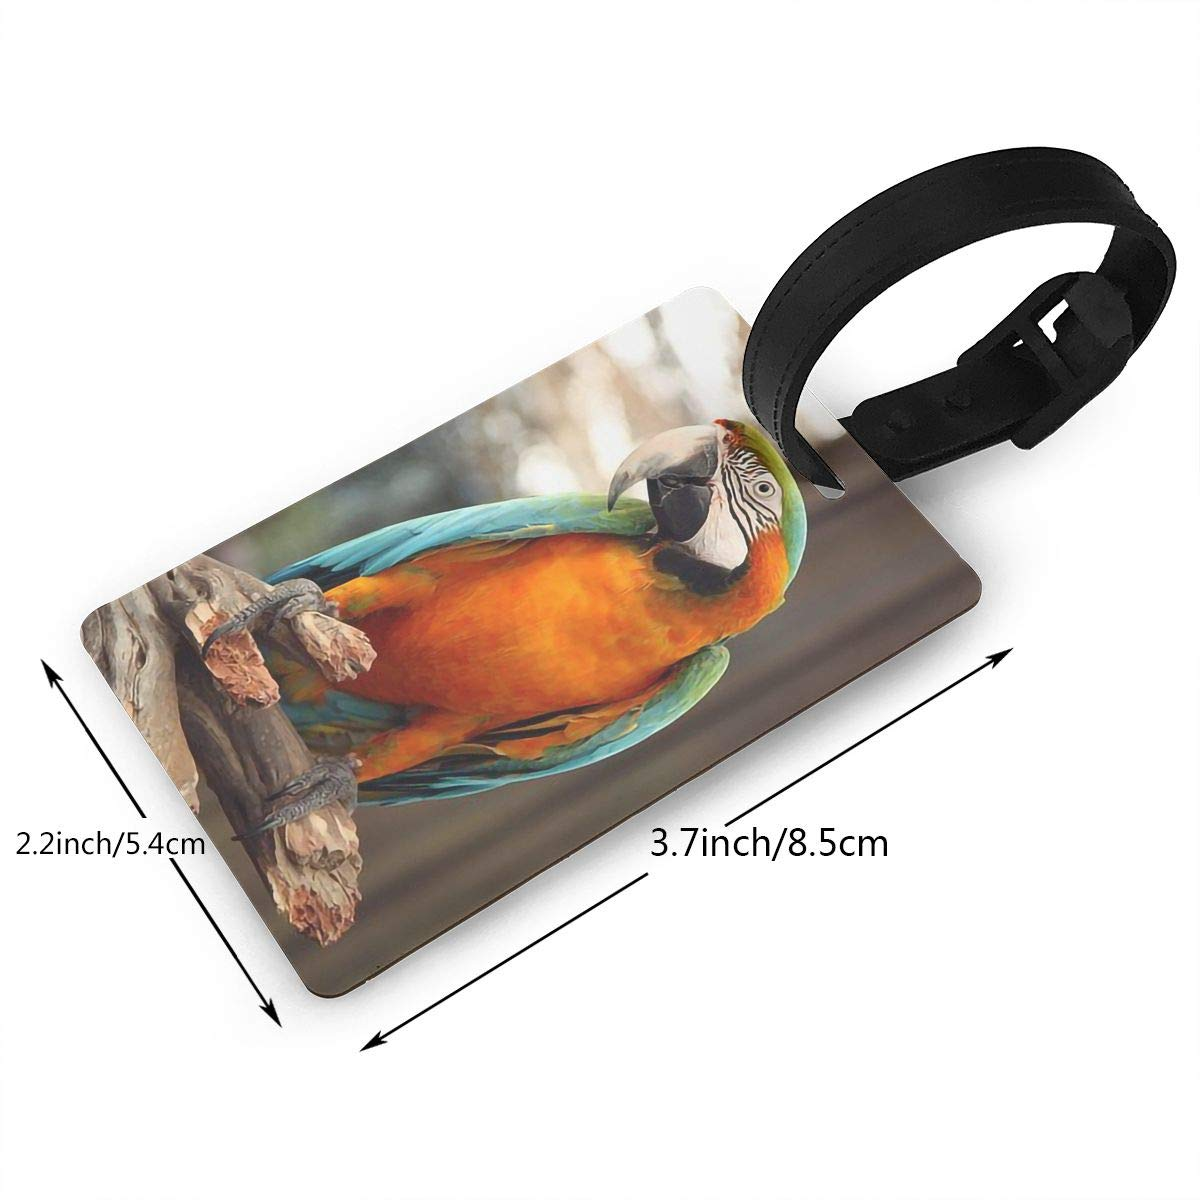 Parrot Handbag Tag For Suitcase Bag Accessories 2 Pack Luggage Tags